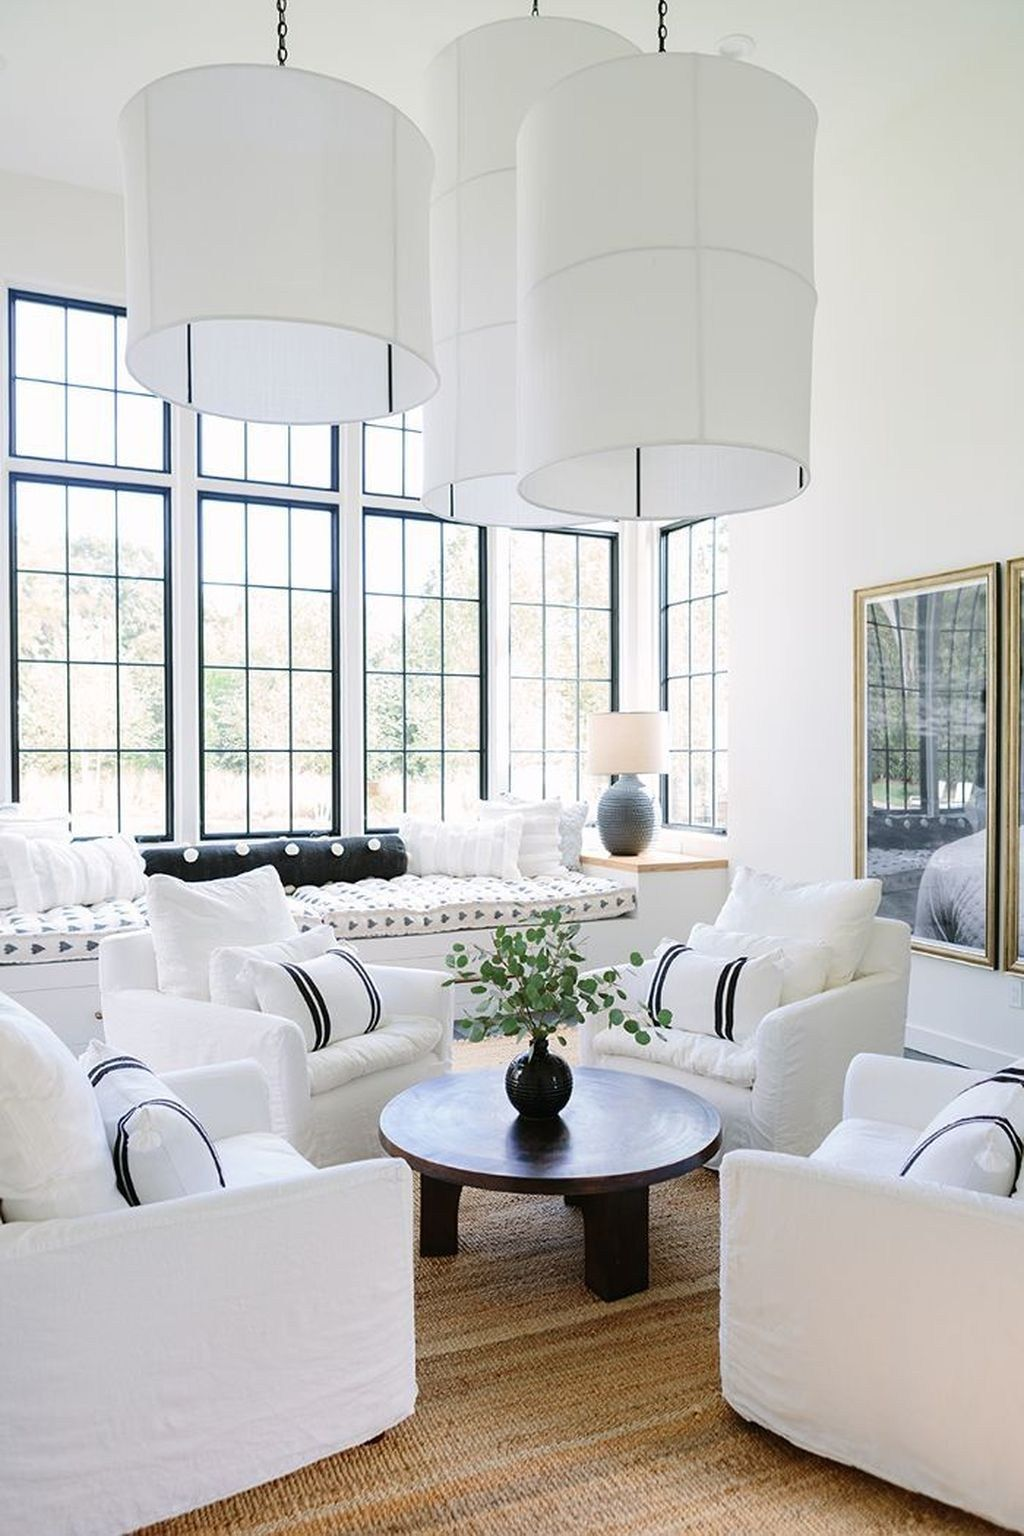 36 Beauty Formal Living Room Design Ideas | Formal living rooms ...